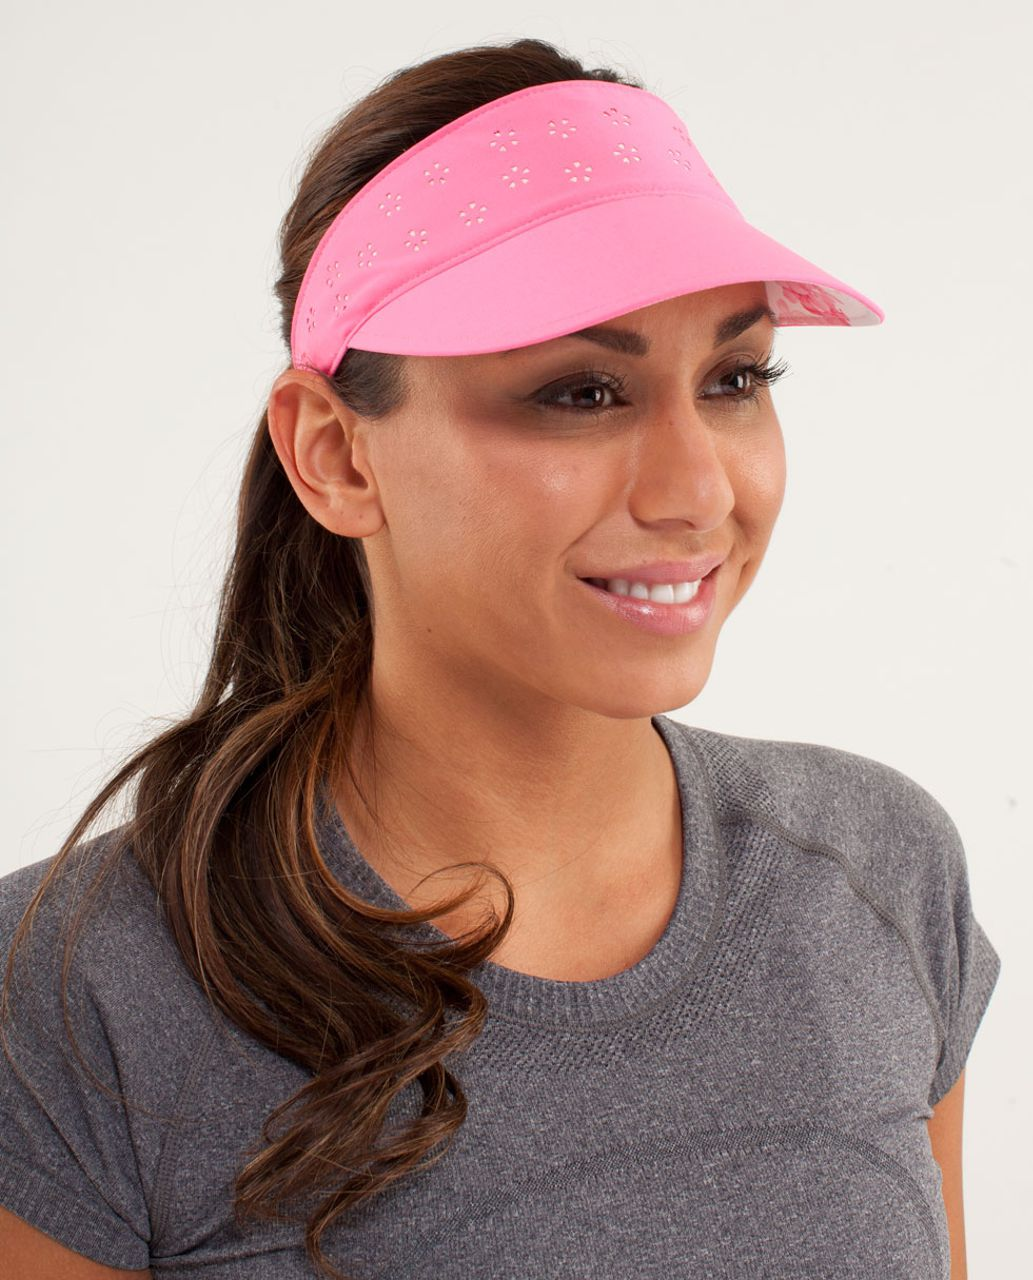 Lululemon Shady Lady Run Visor - Pinkelicious